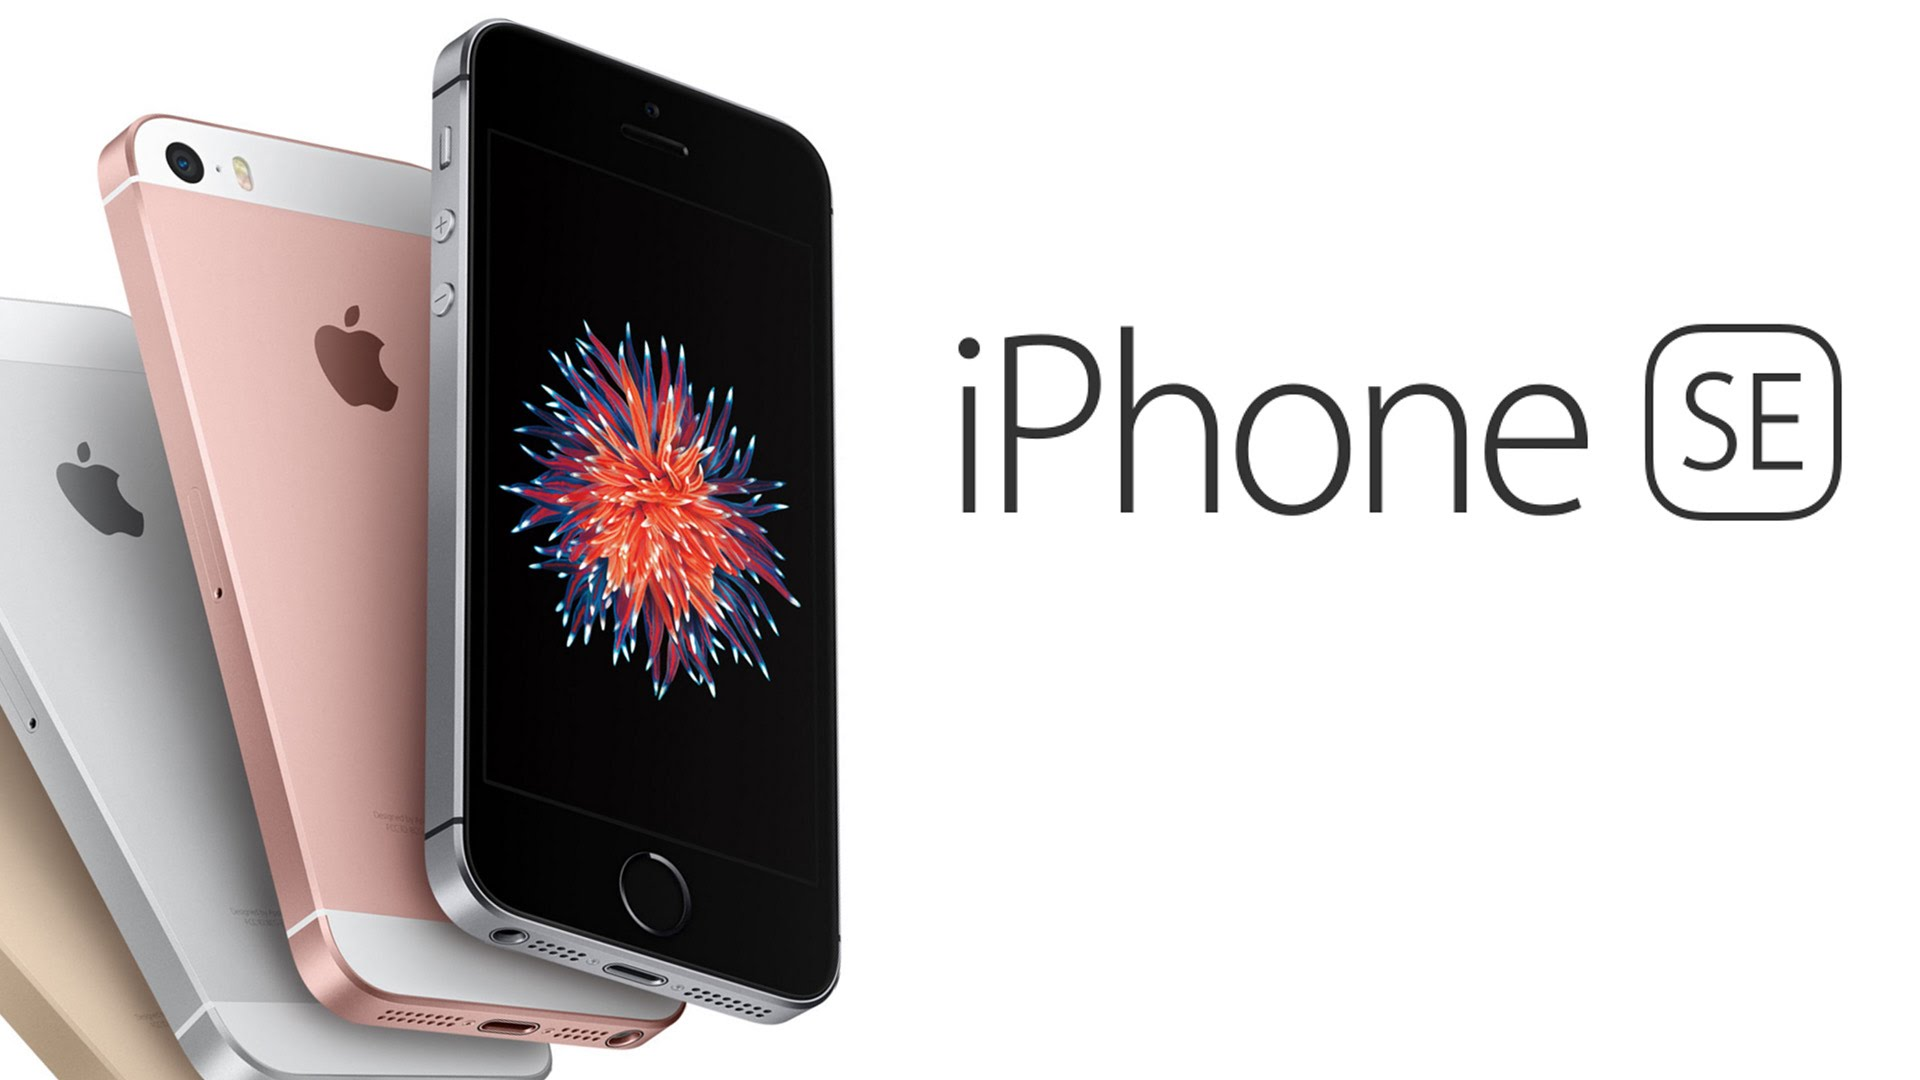 Apple's iPhone SE now available in Costa Rica